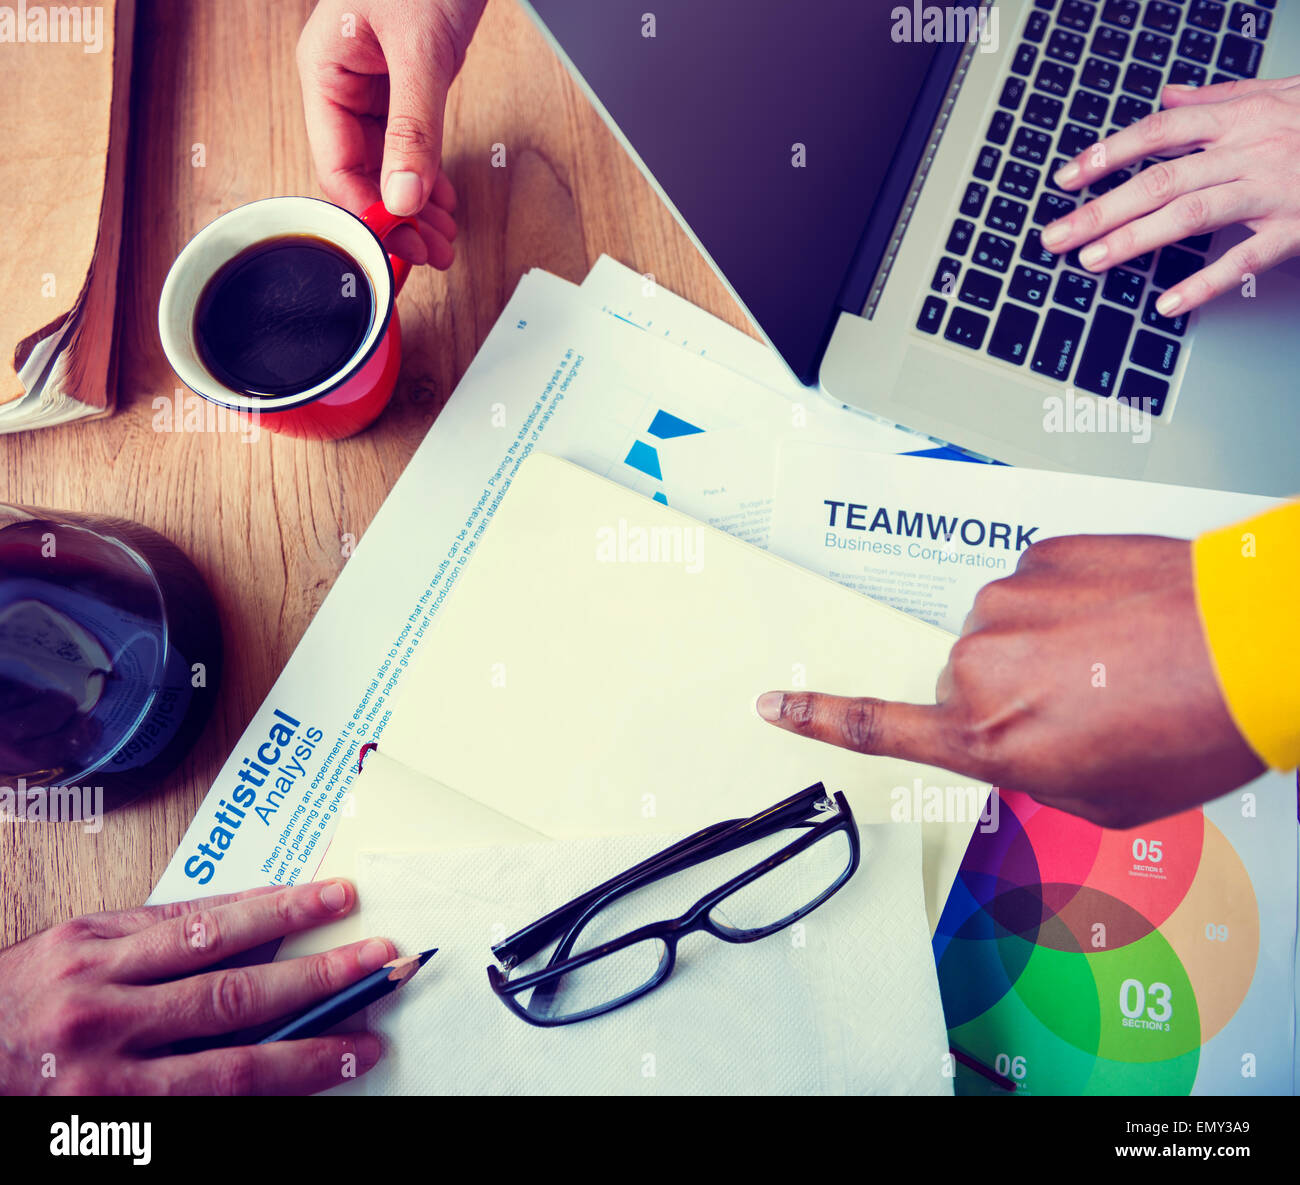 Business People Statistical Analysis Teamwork Concept - Stock Image